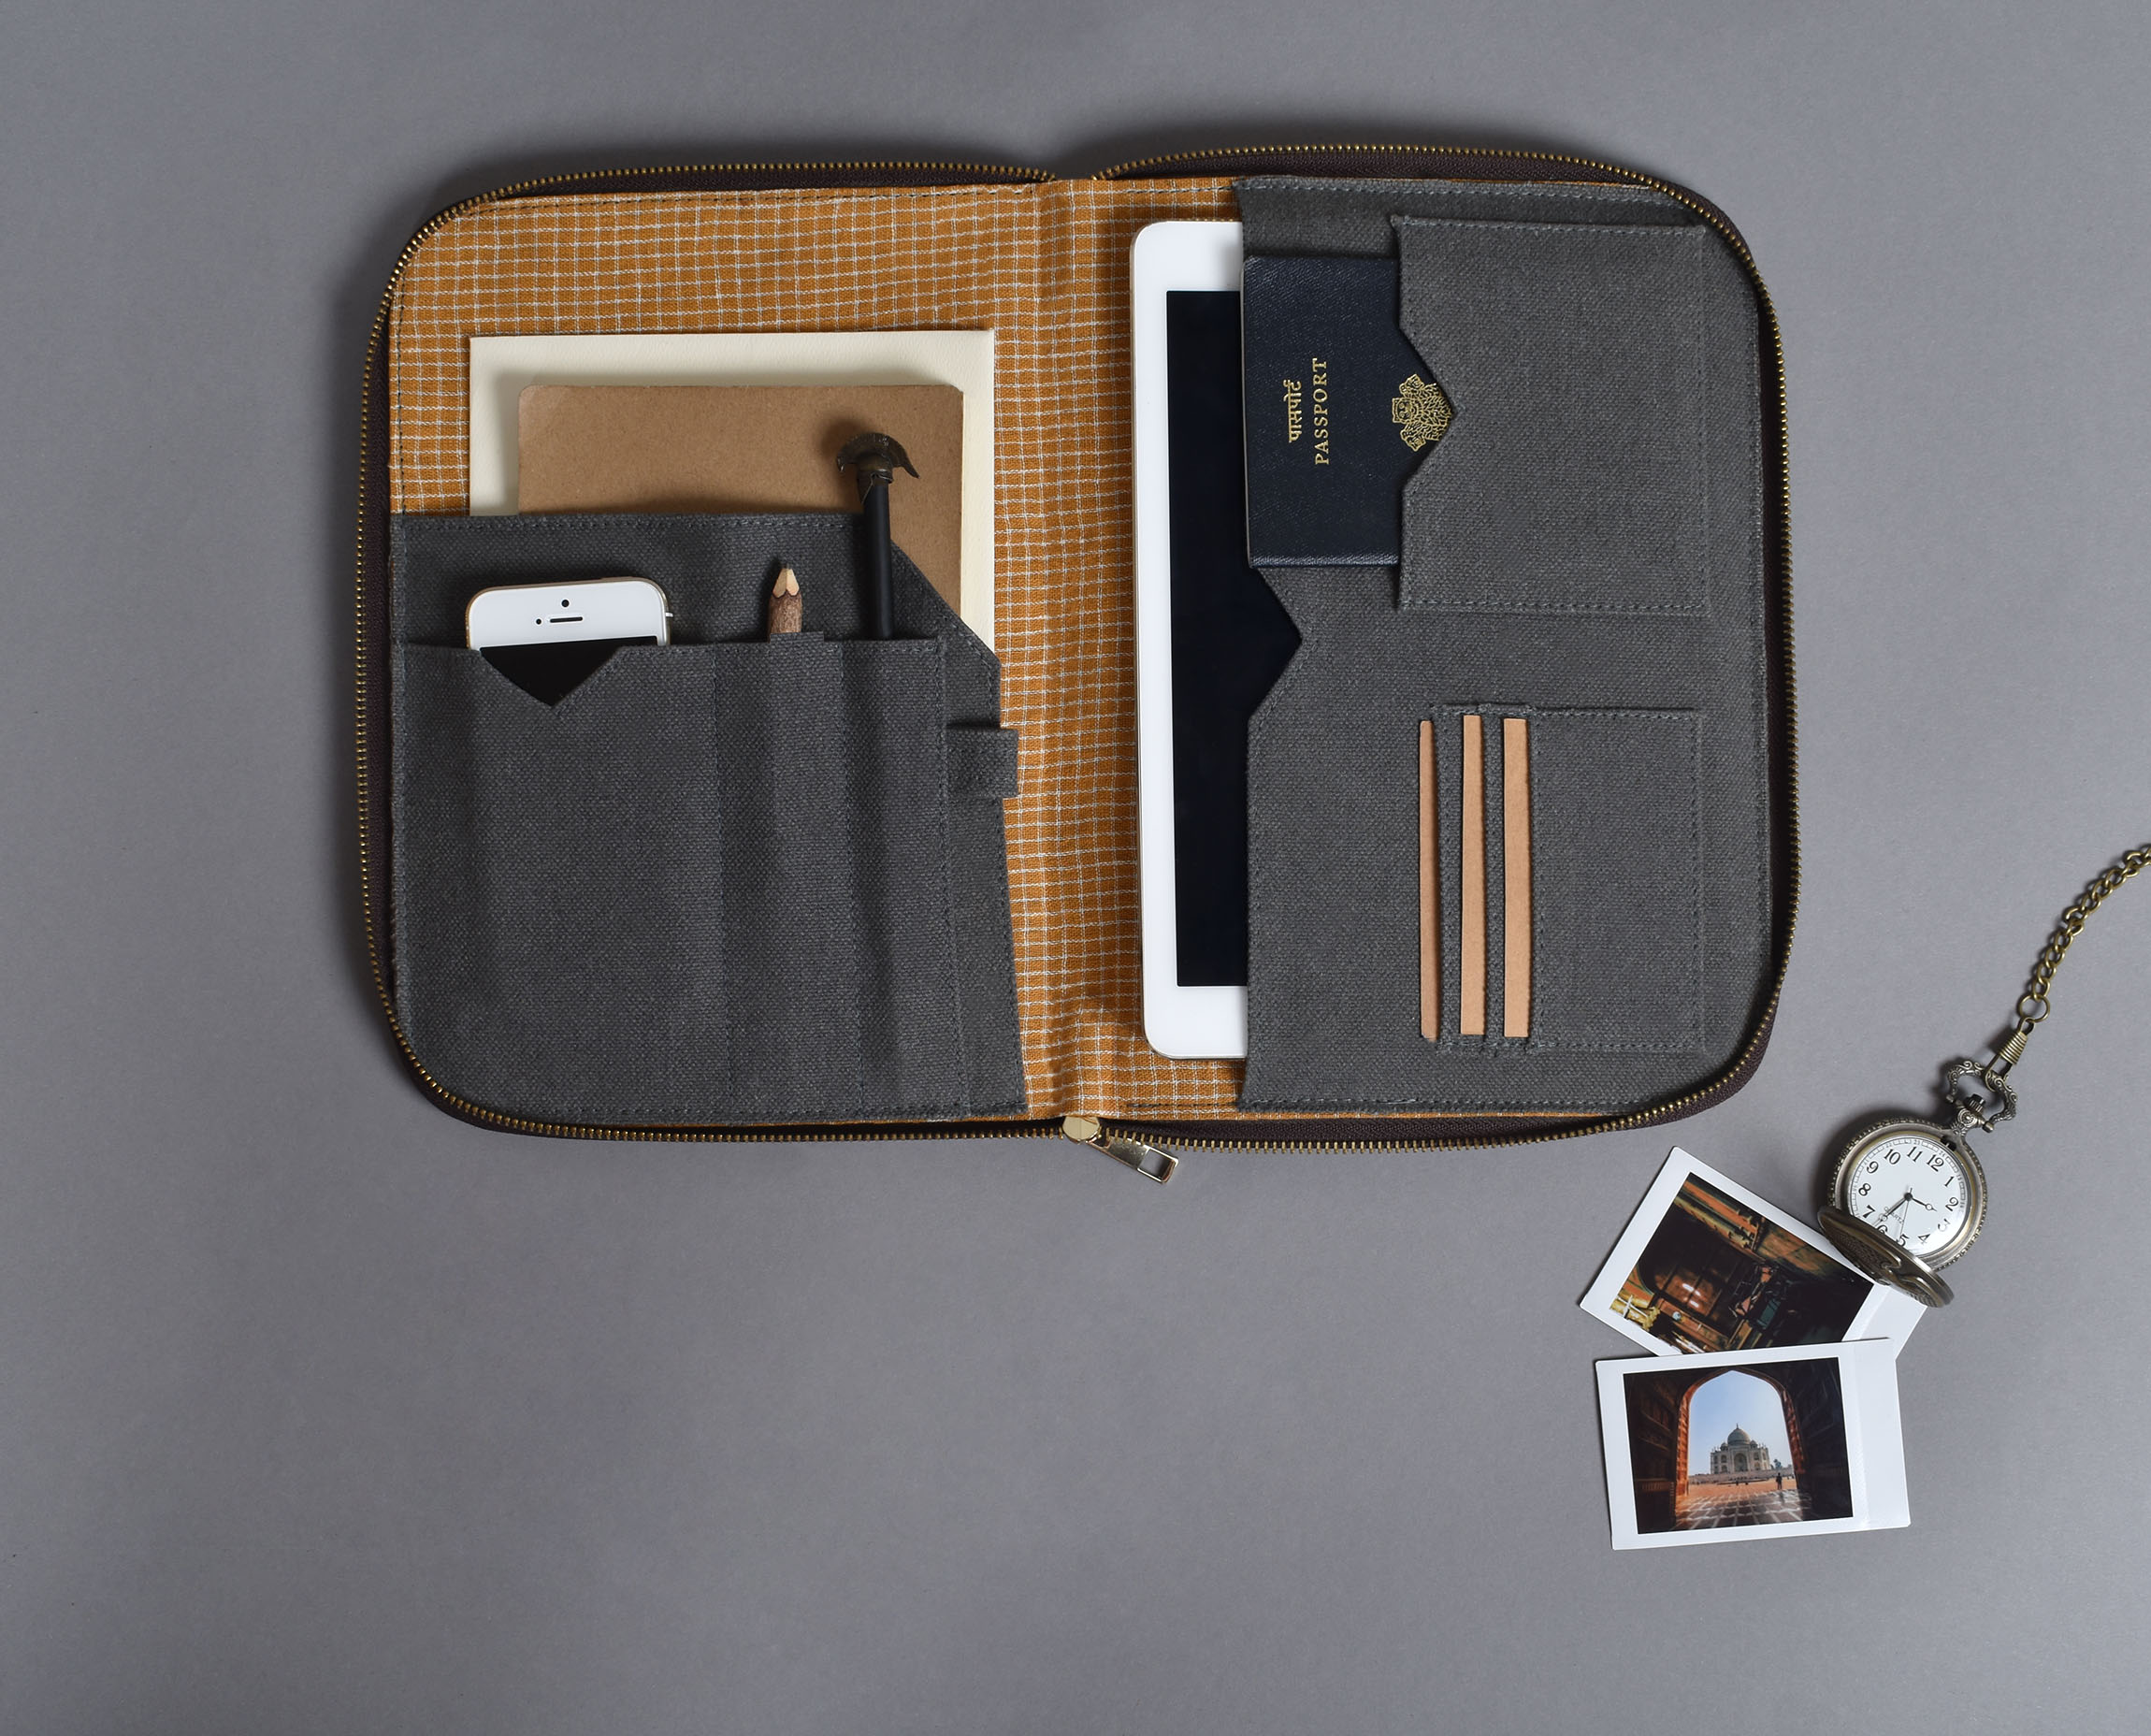 """""""Heading for a meet or traveling, this Tech Organizer is quite handy and versatile for multiple working functions. Effortlessly organize your tablet, phone, diary, stationery, and other accessories in one single zipper compartment with this gender-neutral Tech Organizer. It fits in all your work, meet and travel essentials in a place. It is designed for easy and fast access to your essentials, preventing the task of digging for minutes into your heavily filled bags. It helps you keep your things in place, to understand and carry what is necessary and stay decluttered. The organizer fits in tablets of the body dimension equals or less than 9.75 inches by 7 inches. Fit for a quick wash (dry clean only)."""""""